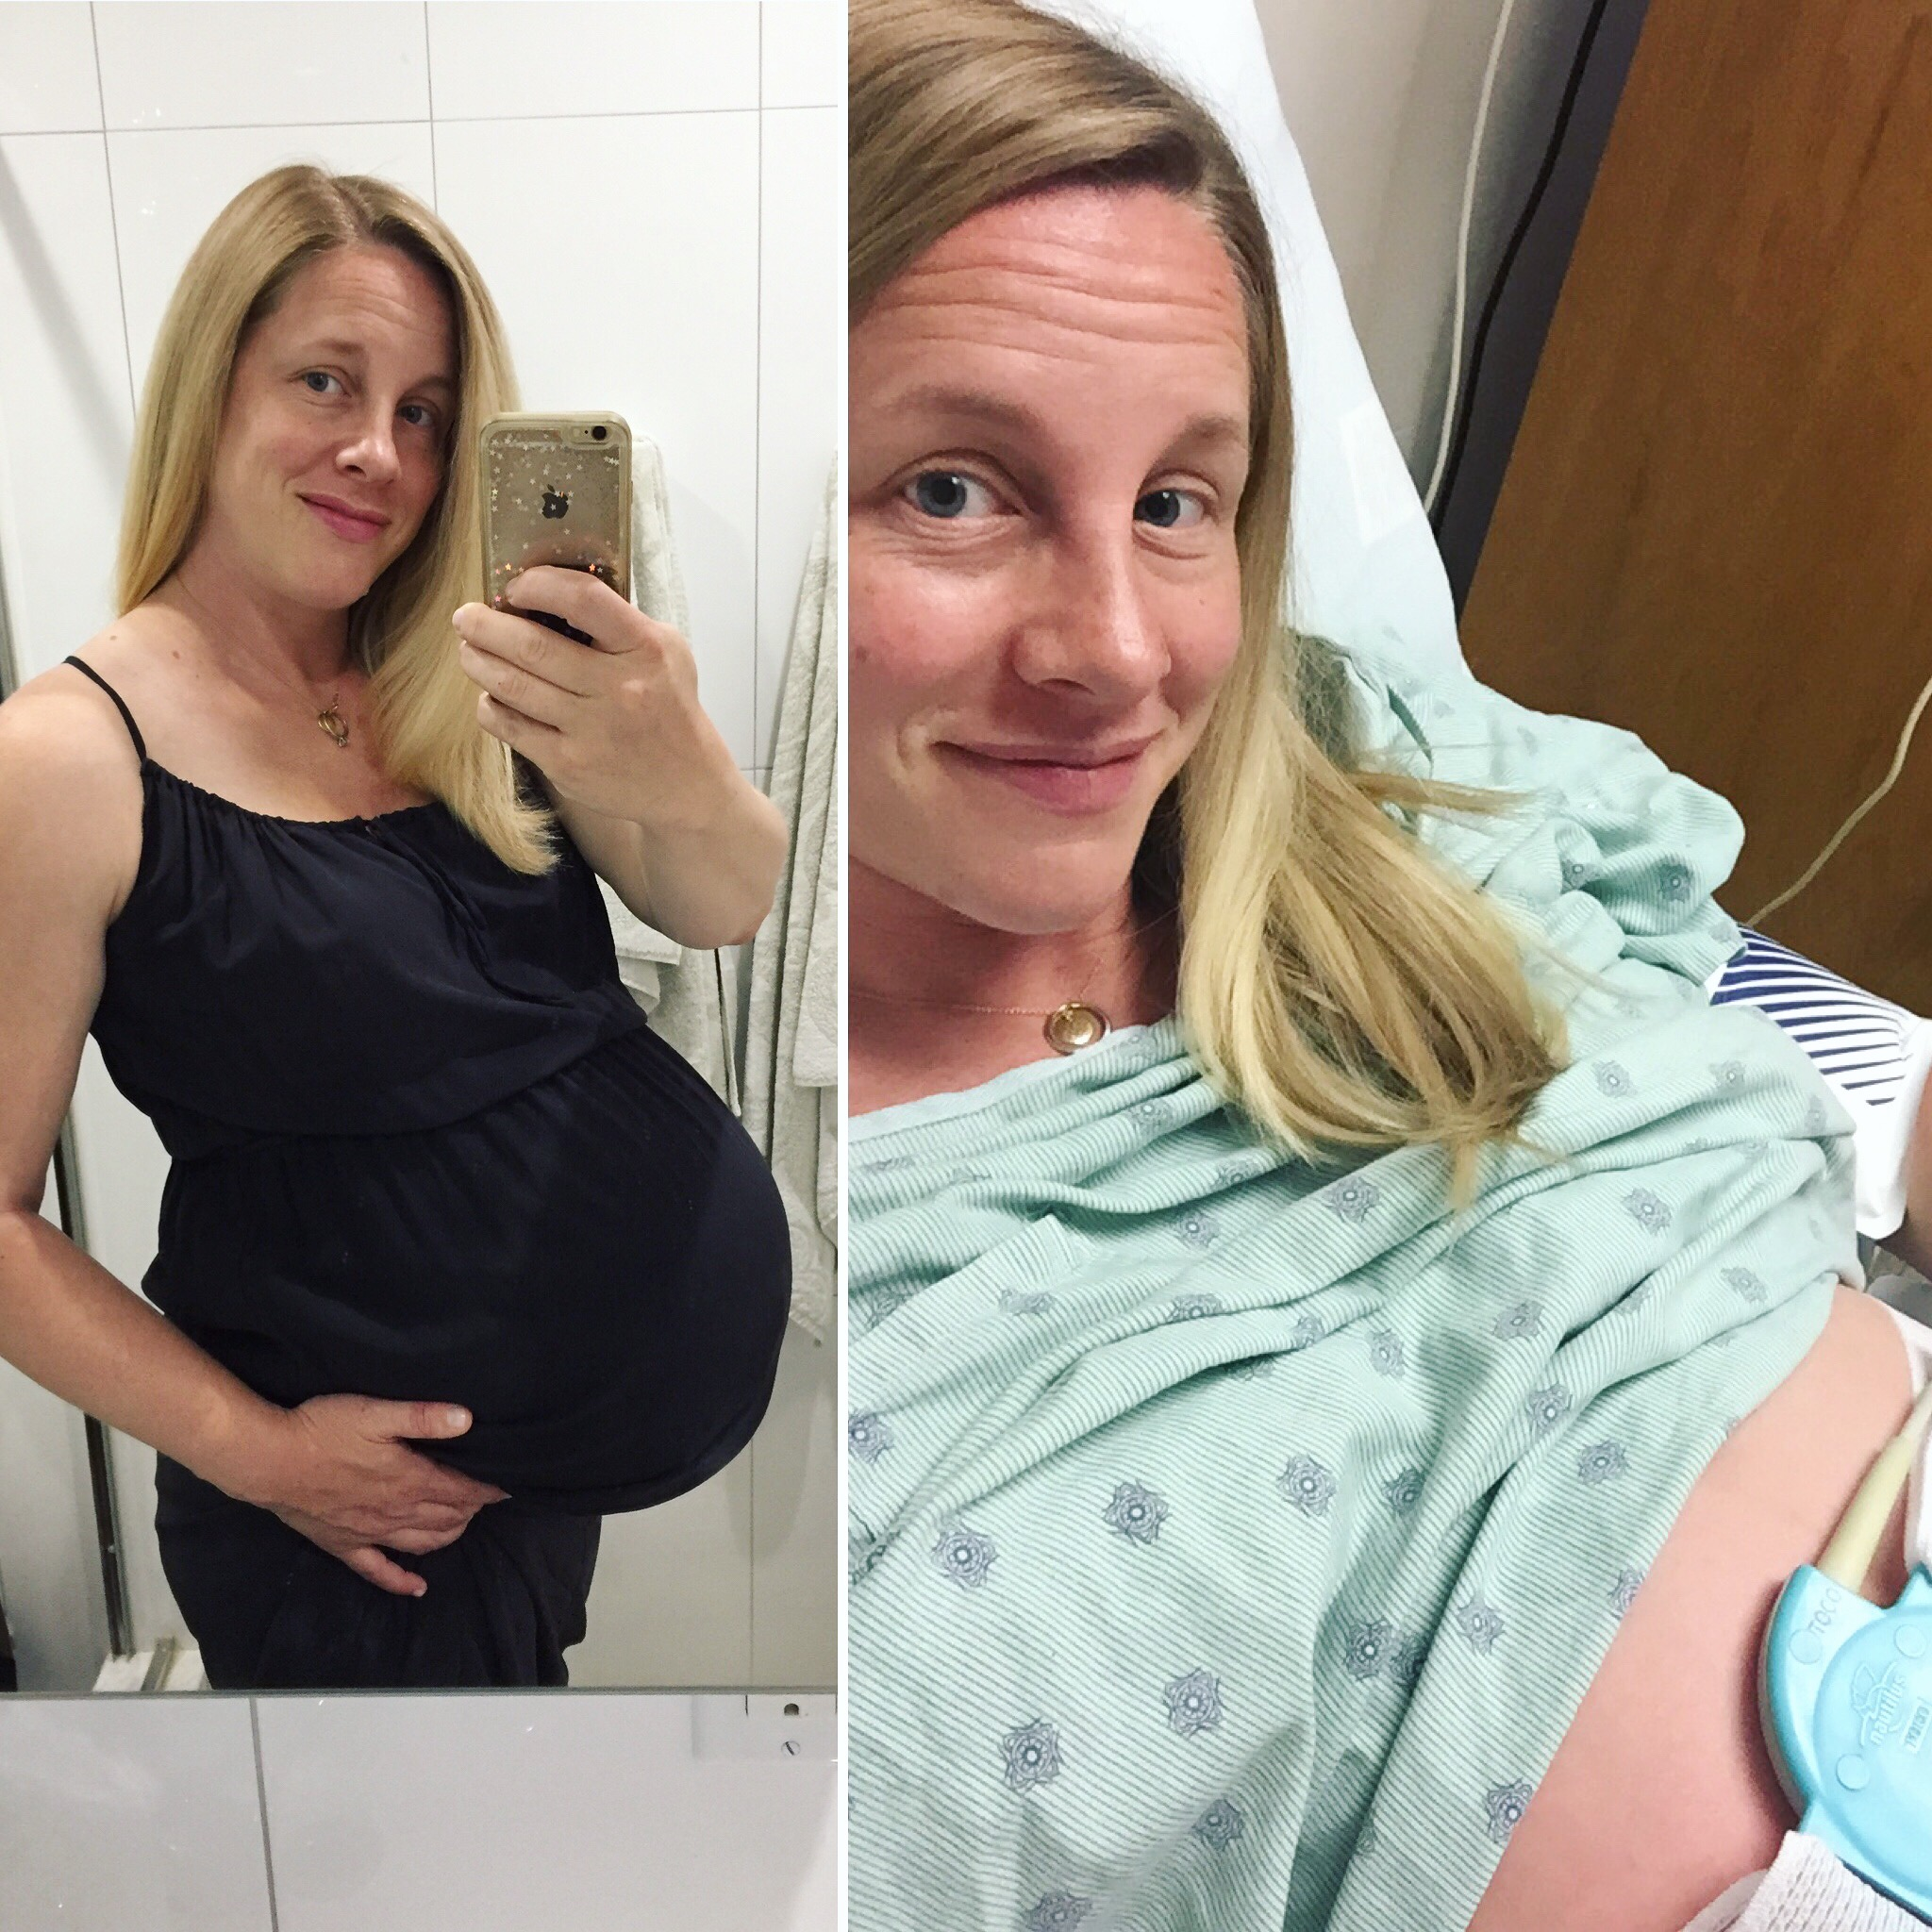 35.5 weeks - doctor appointment and hospital